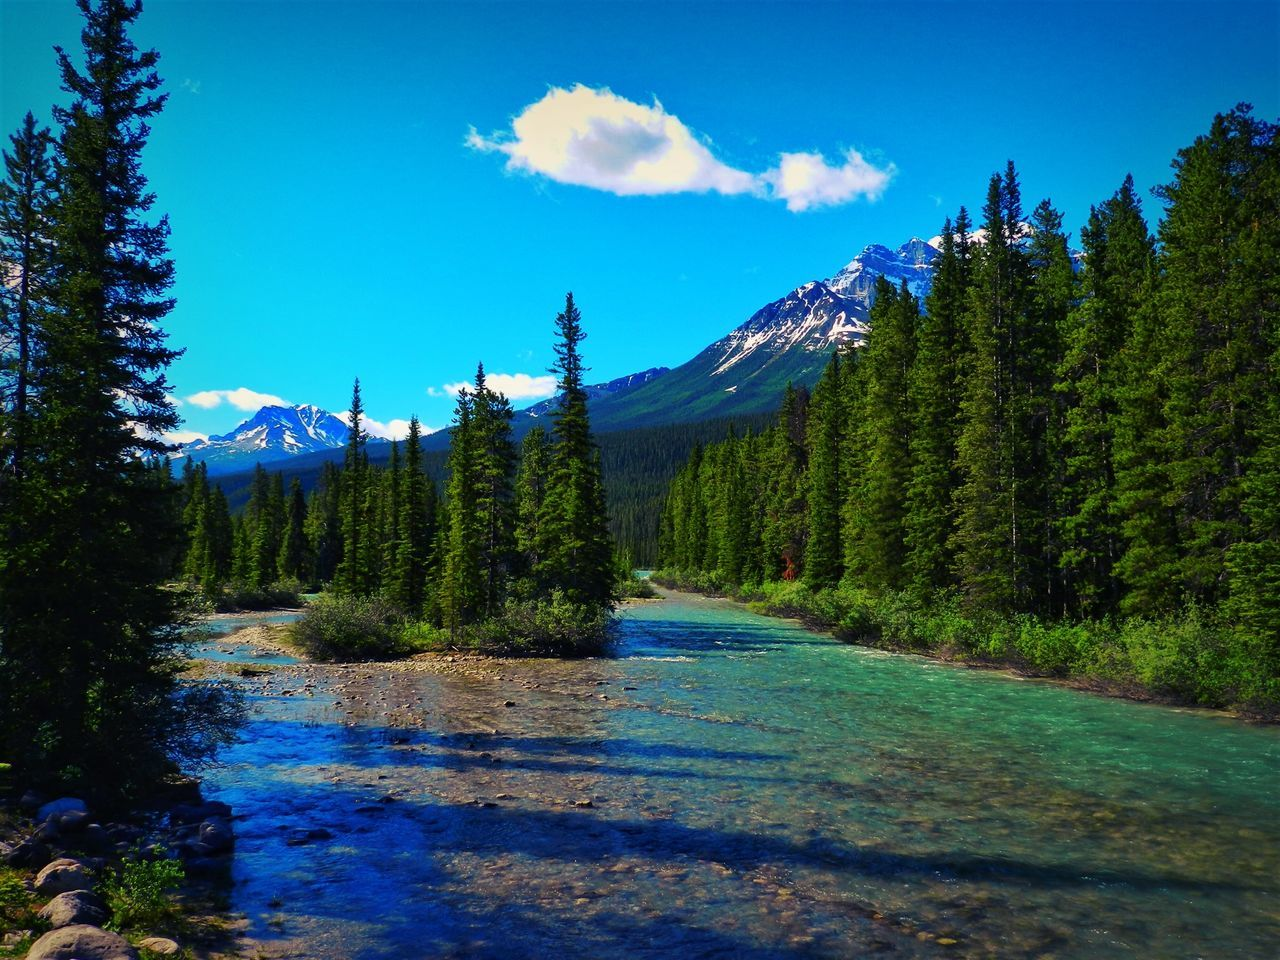 Alberta, Canada Beauty In Nature Blue Canada Day Forest Growth Landscape Mountain Nature No People Outdoors Scenics Sky Tranquil Scene Tranquility Tree